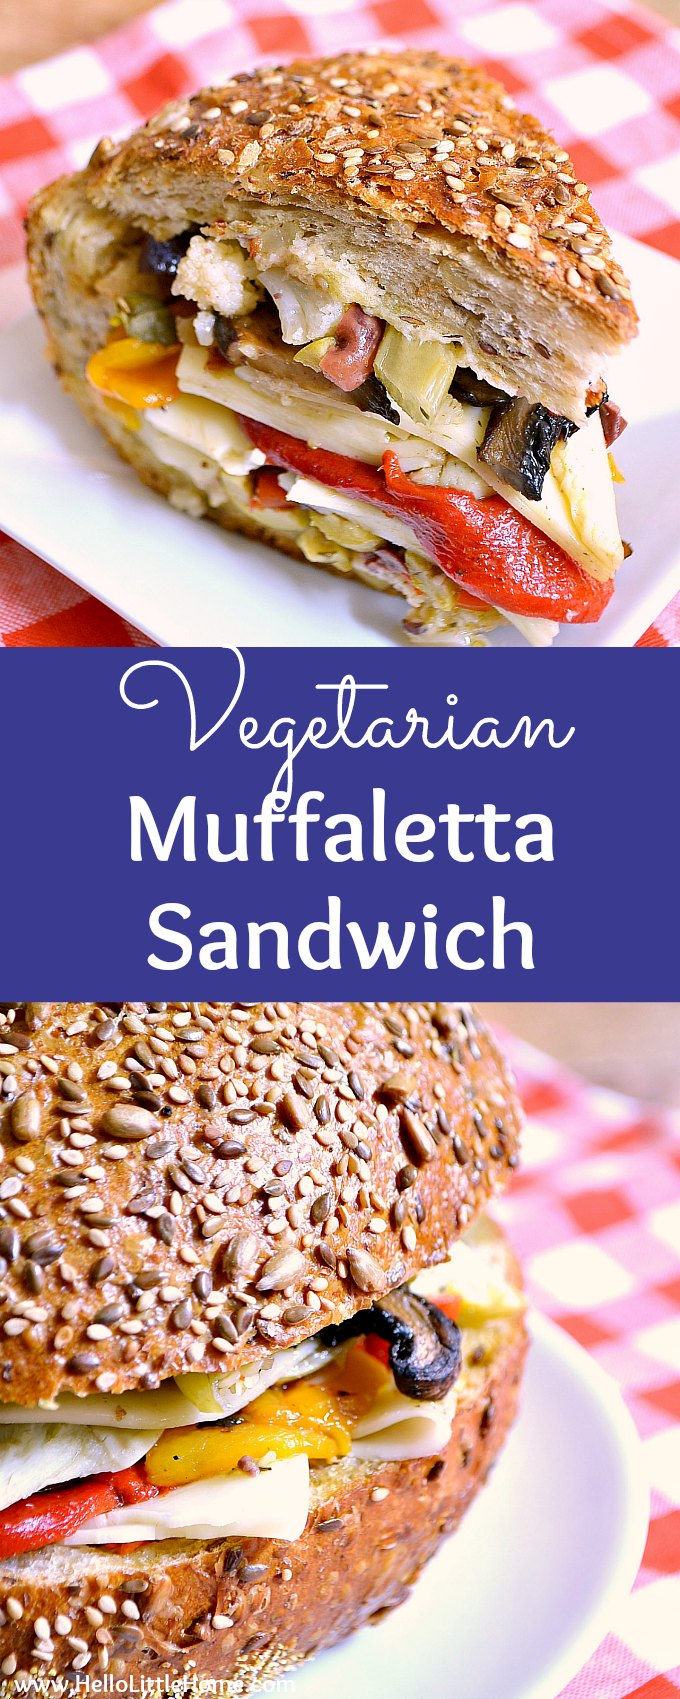 Vegetarian Muffaletta Sandwich recipe … learn how to make a New Orleans muffaletta just like the one you can get in the French Quarter at Central Bakery! This homemade muffaletta sandwich is perfect for a crowd or party, and features delicious Italian bread, a homemade olive salad, mushrooms, red peppers, artichokes, and provolone cheese! An easy muffaletta recipe that's vegan friendly! | Hello Little Home #muffalettarecipe #muffuletta #vegetarianrecipes #veganrecipes #vegetariansandwich